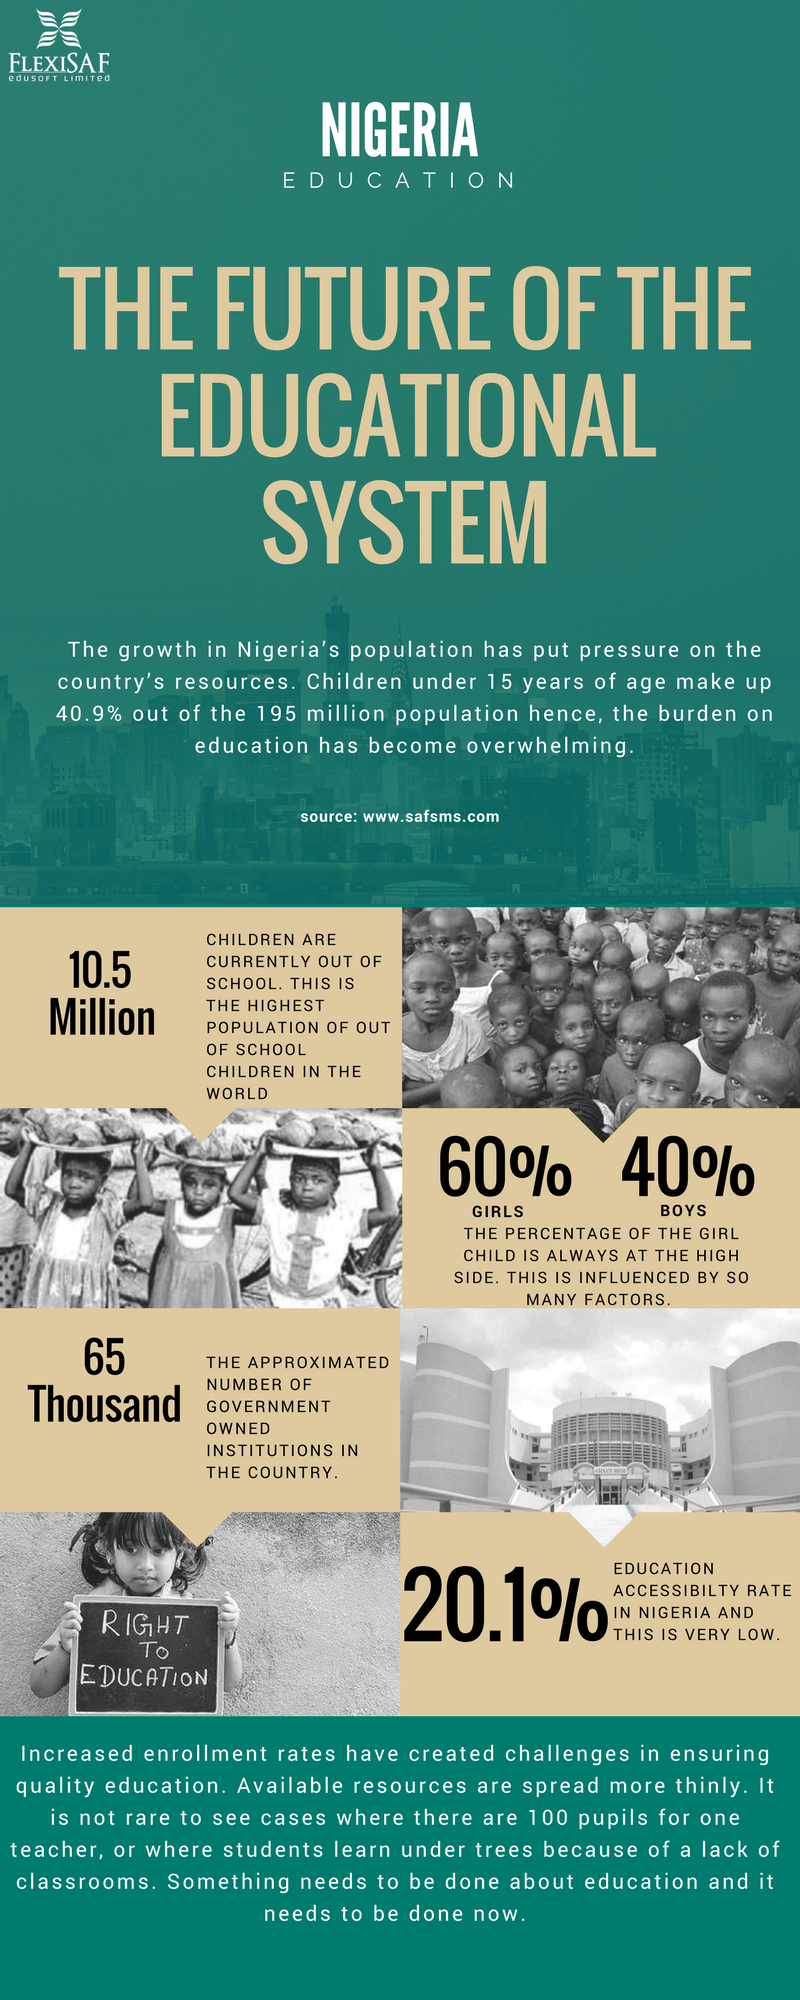 UNICEF Statistics on Education in Nigeria